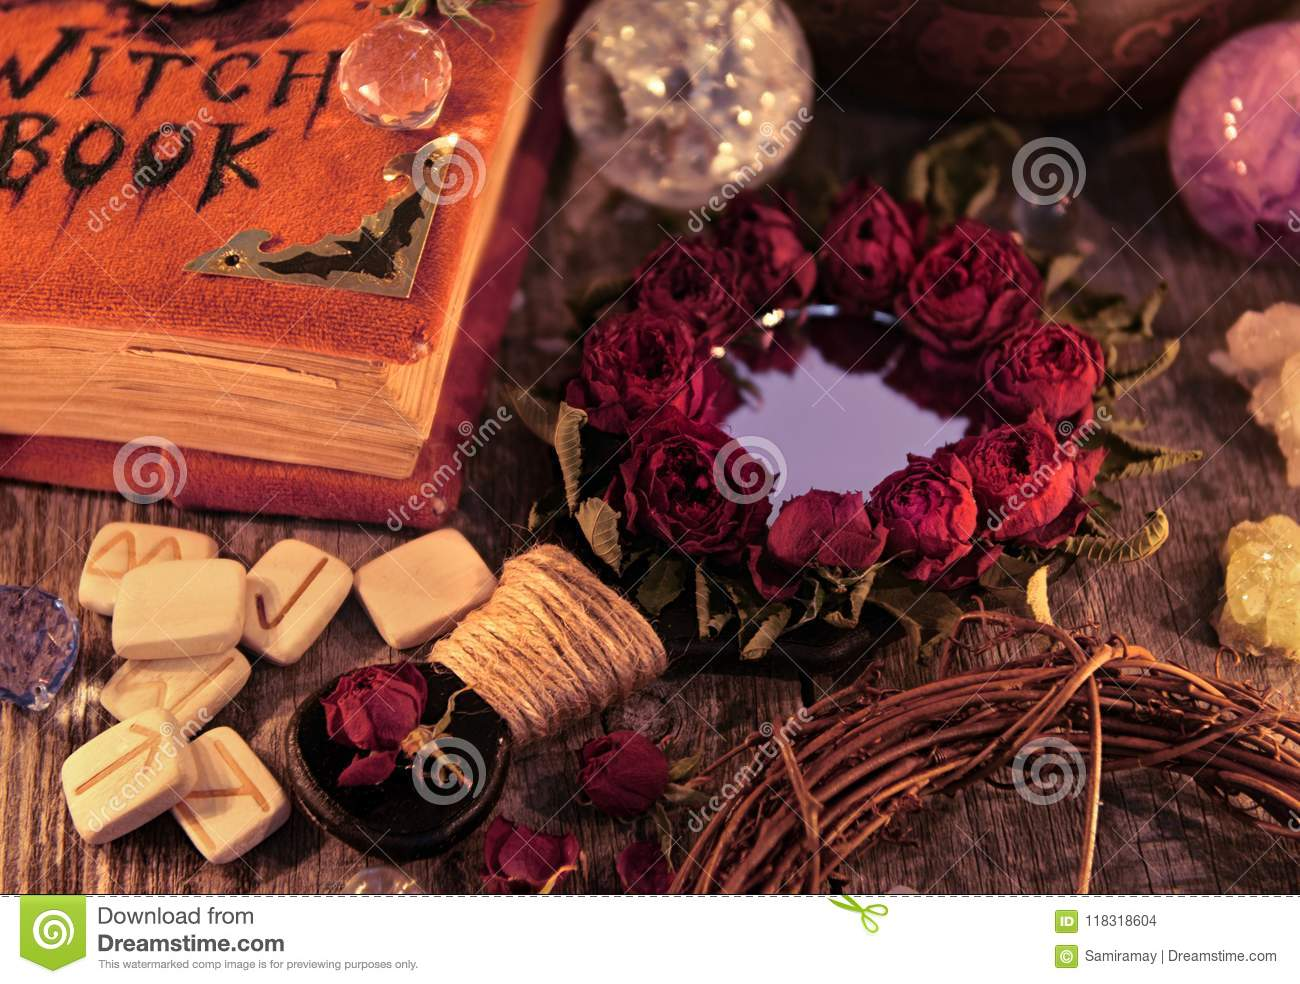 Close Up With Magic Mirror, Witch Book And Runes On The Table